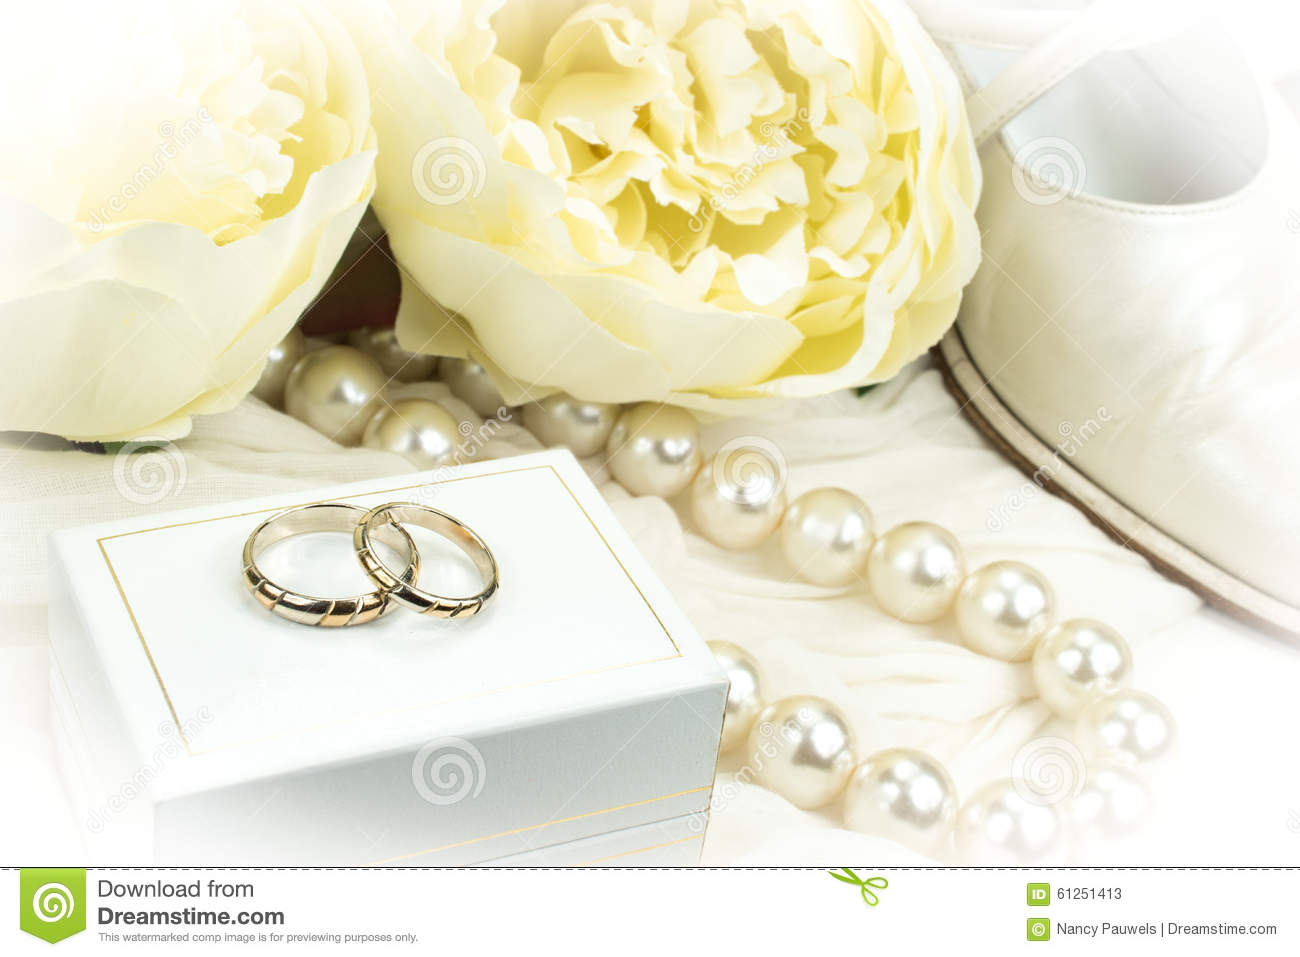 screen dans dan j pm romantic zaidman bands s michelle rings at wedding shot